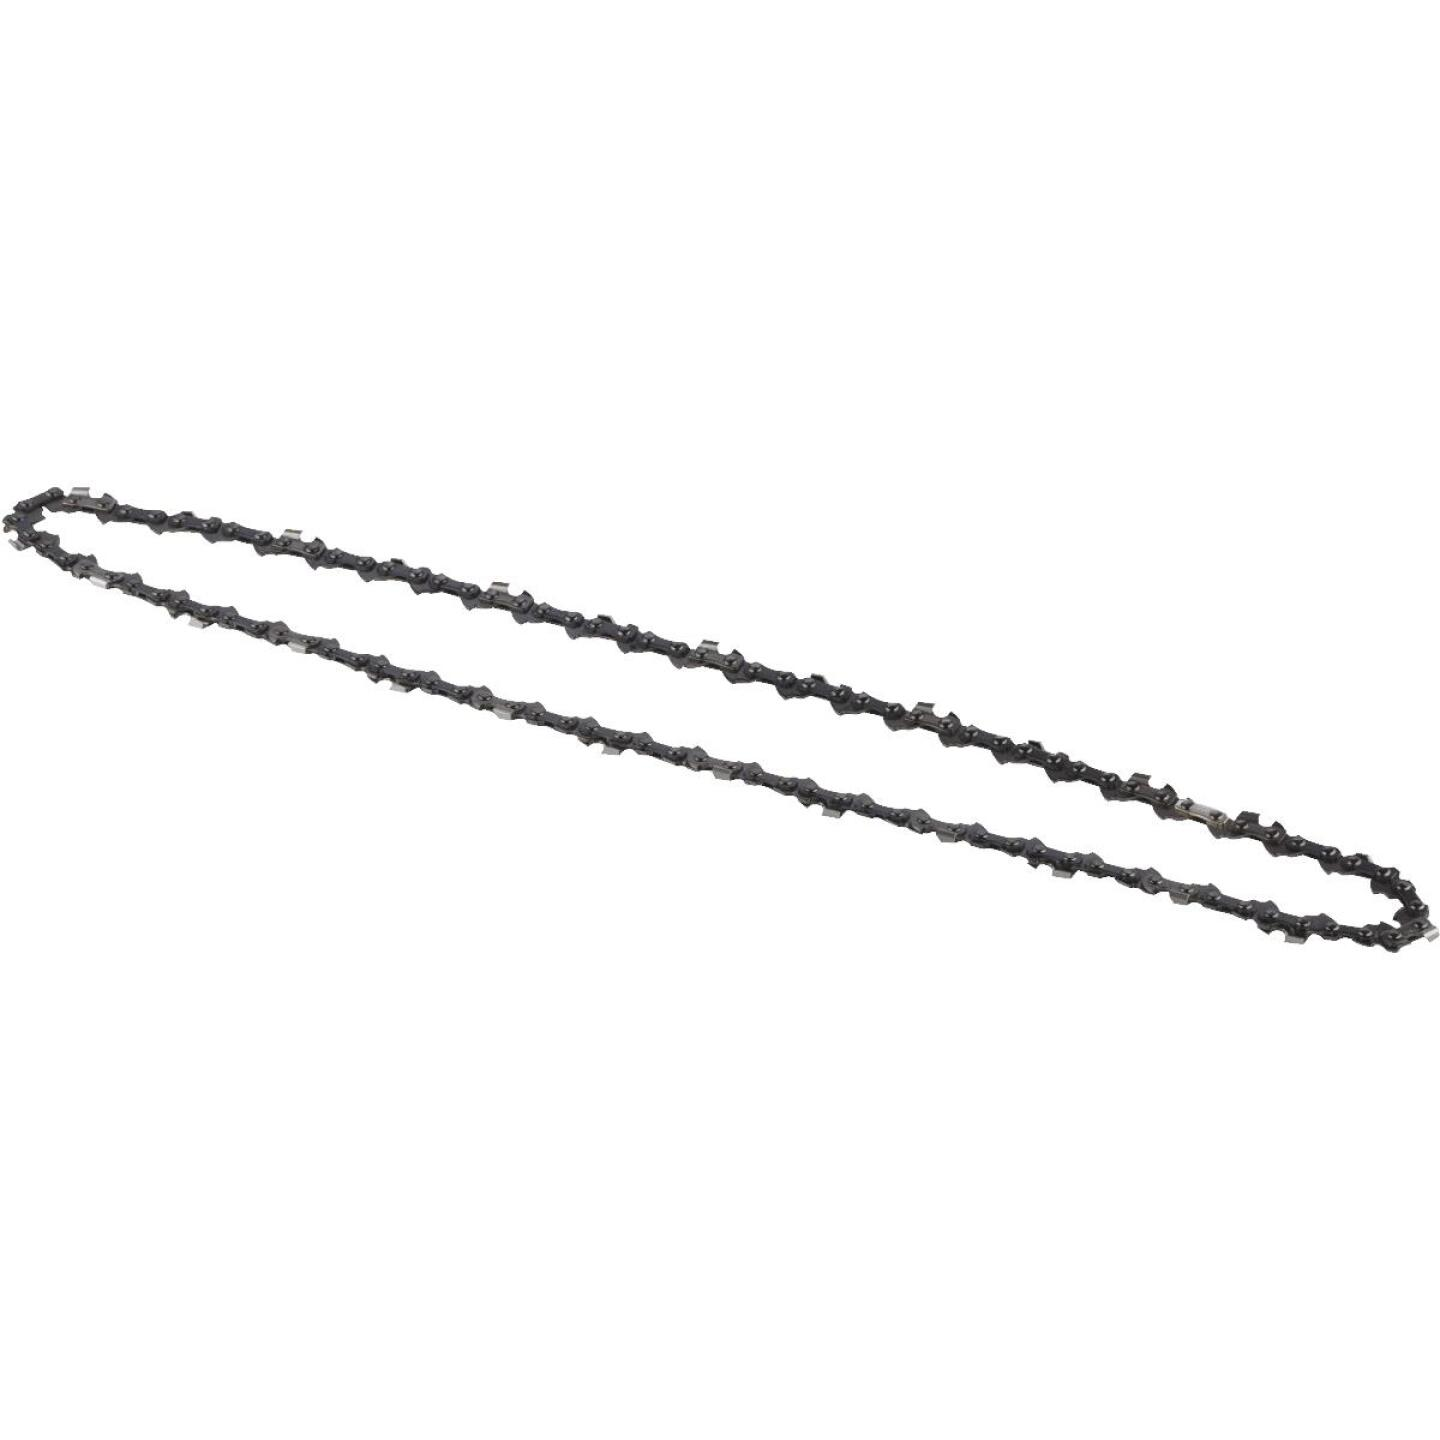 Oregon S54 16 In. Chainsaw Chain Image 3